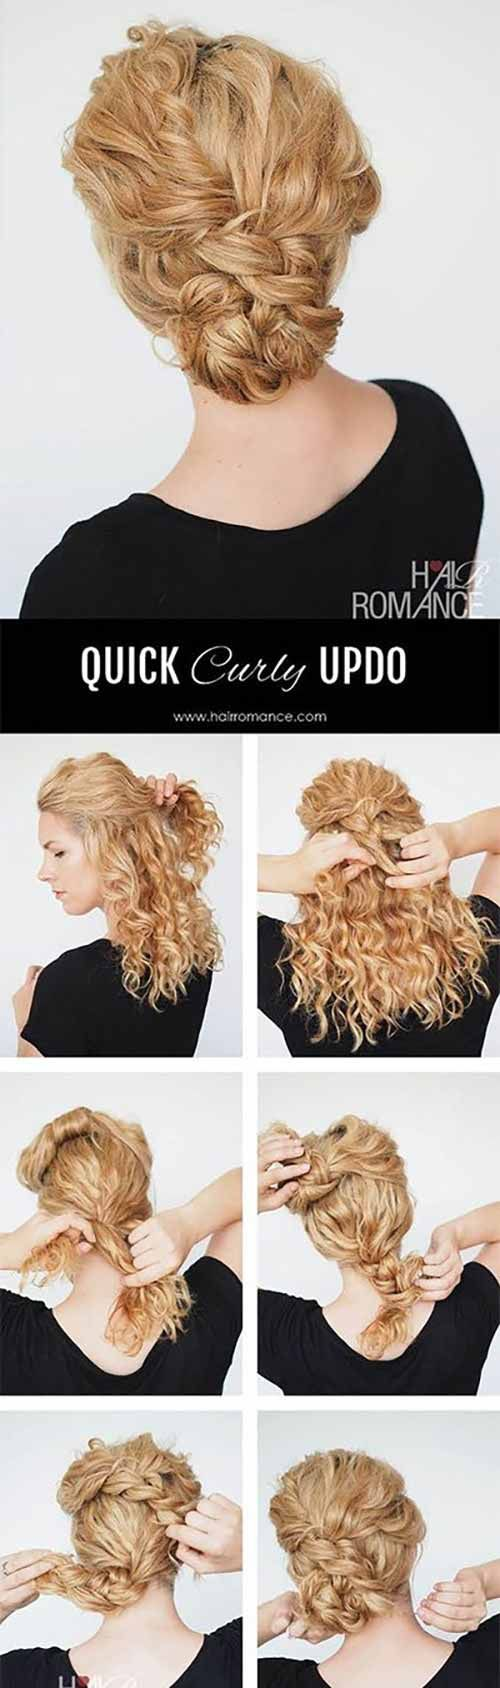 20 Incredibly Stunning Diy Updos For Curly Hair Curly Hair Updo Easy Hair Updos Diy Updo